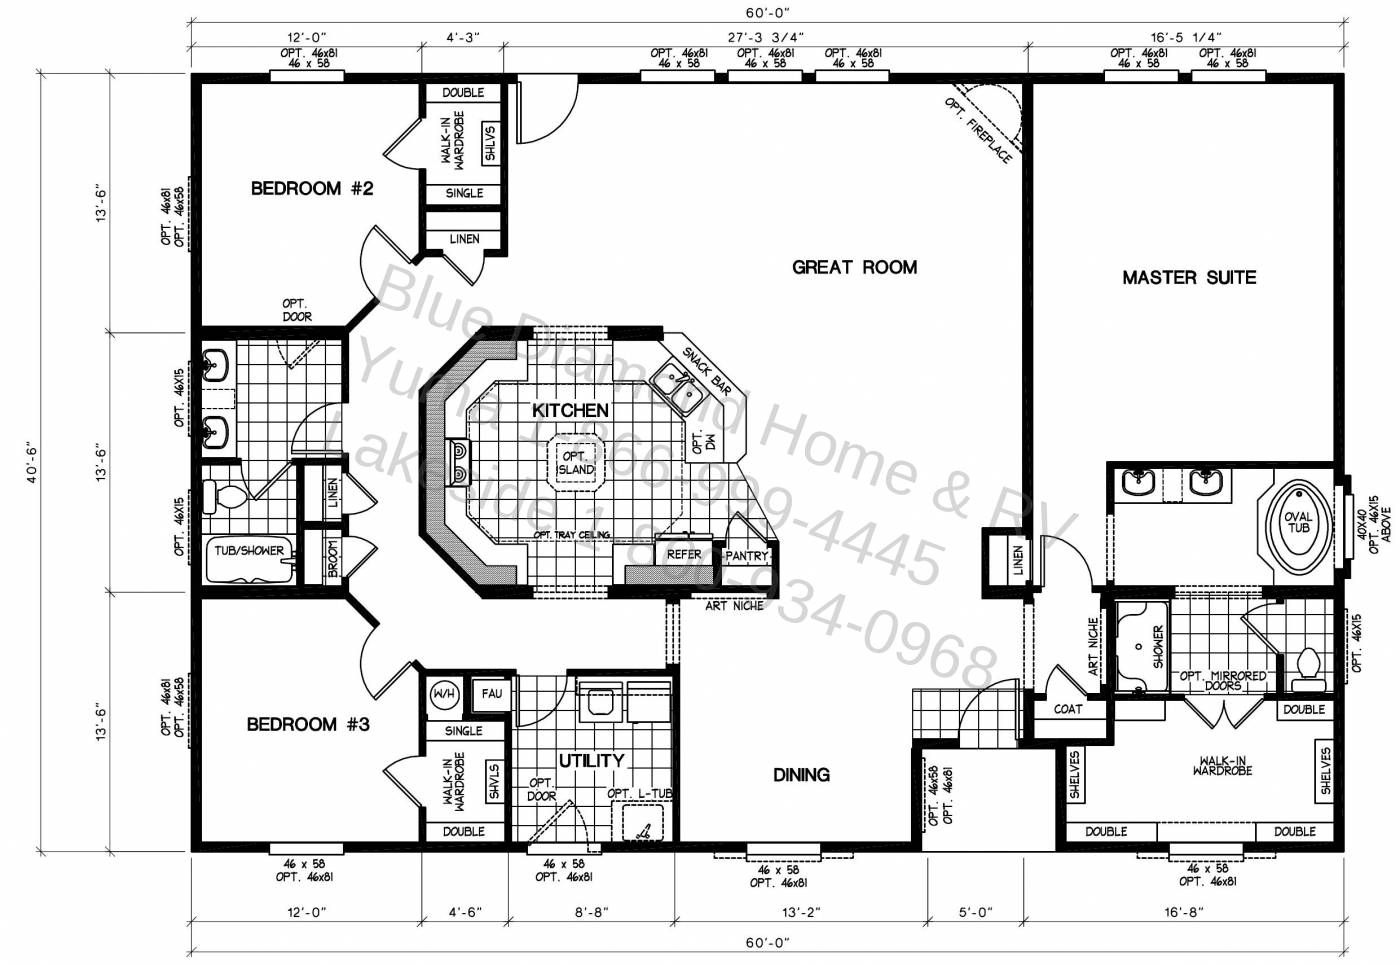 Unique Manufactured Home Plans 7 Triple Wide Mobile Home Floor Plans Mobile Home Floor Plans Modular Floor Plans Triple Wide Mobile Homes